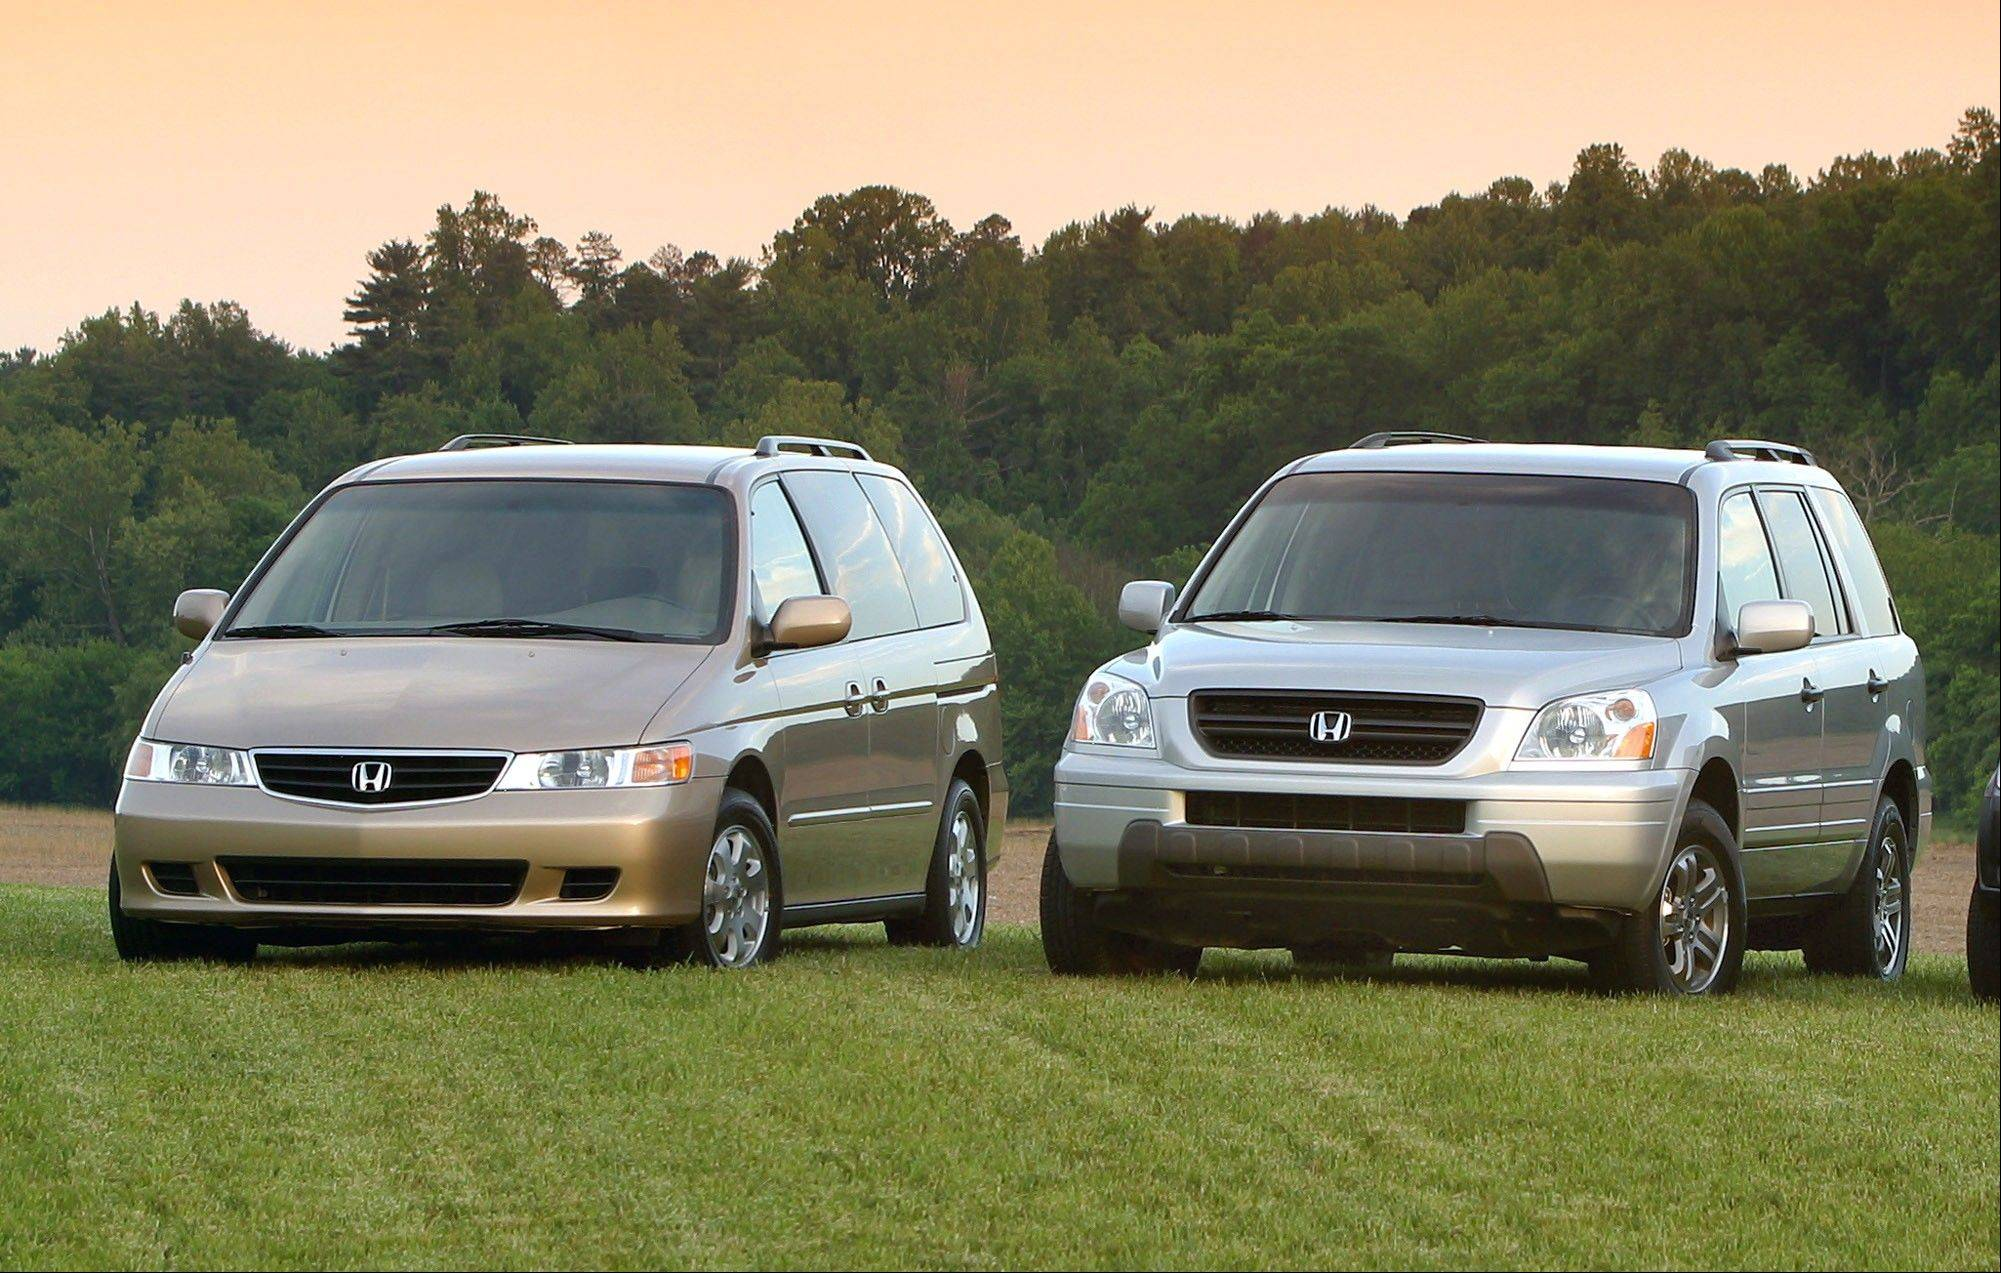 Safety regulators in the U.S. are investigating complaints that older Honda Odyssey Minivans and Pilot SUVs can roll away after drivers have removed the ignition key. The probe by the National Highway Traffic Safety Administration affects more than 577,000 vehicles from the 2003 and 2004 model years with automatic transmissions.